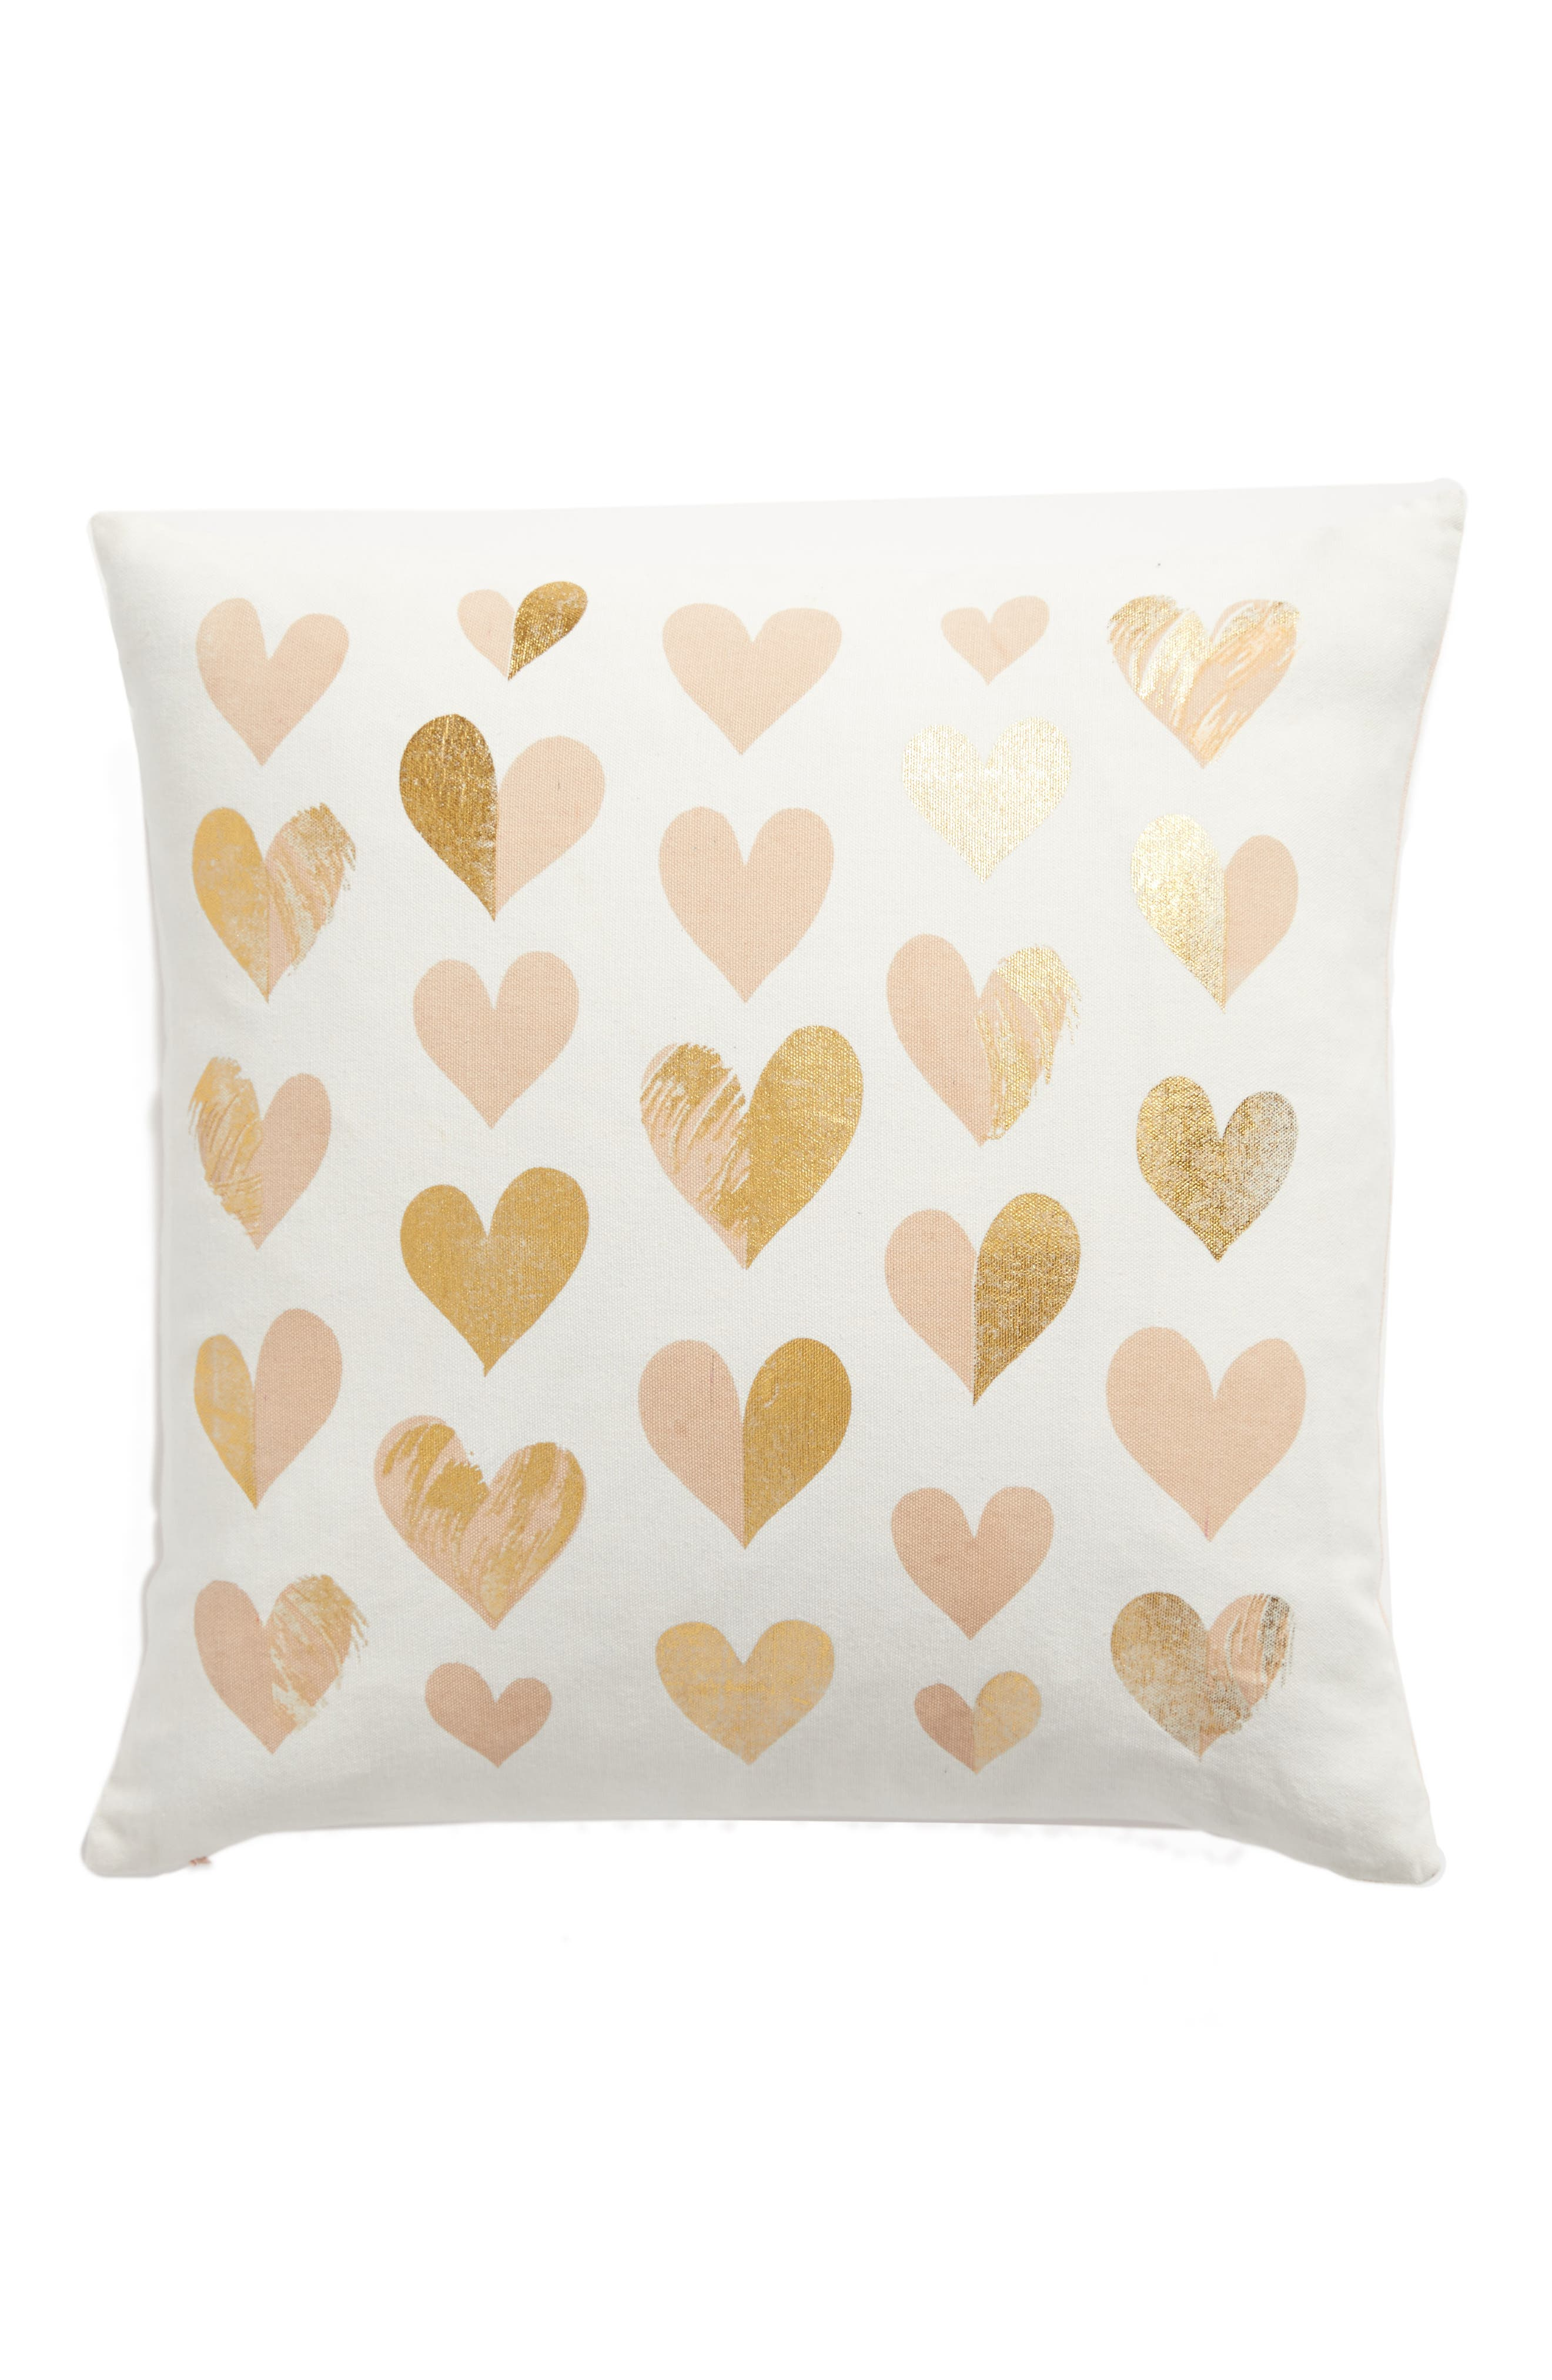 Lots of Love Accent Pillow,                             Main thumbnail 1, color,                             900